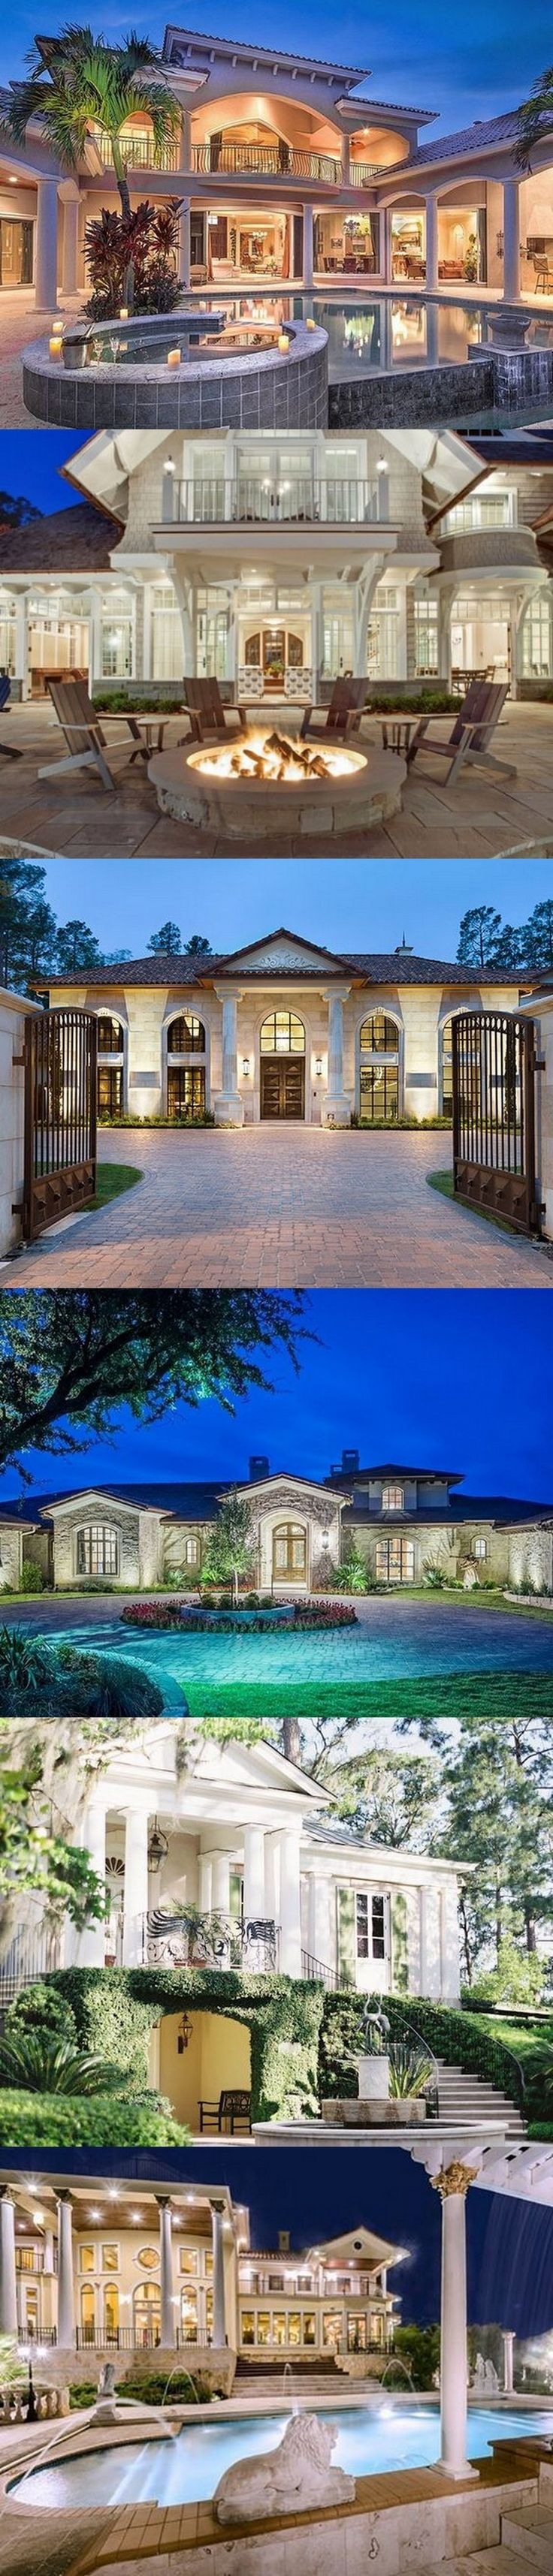 best Dream Home images on Pinterest Home ideas Future house